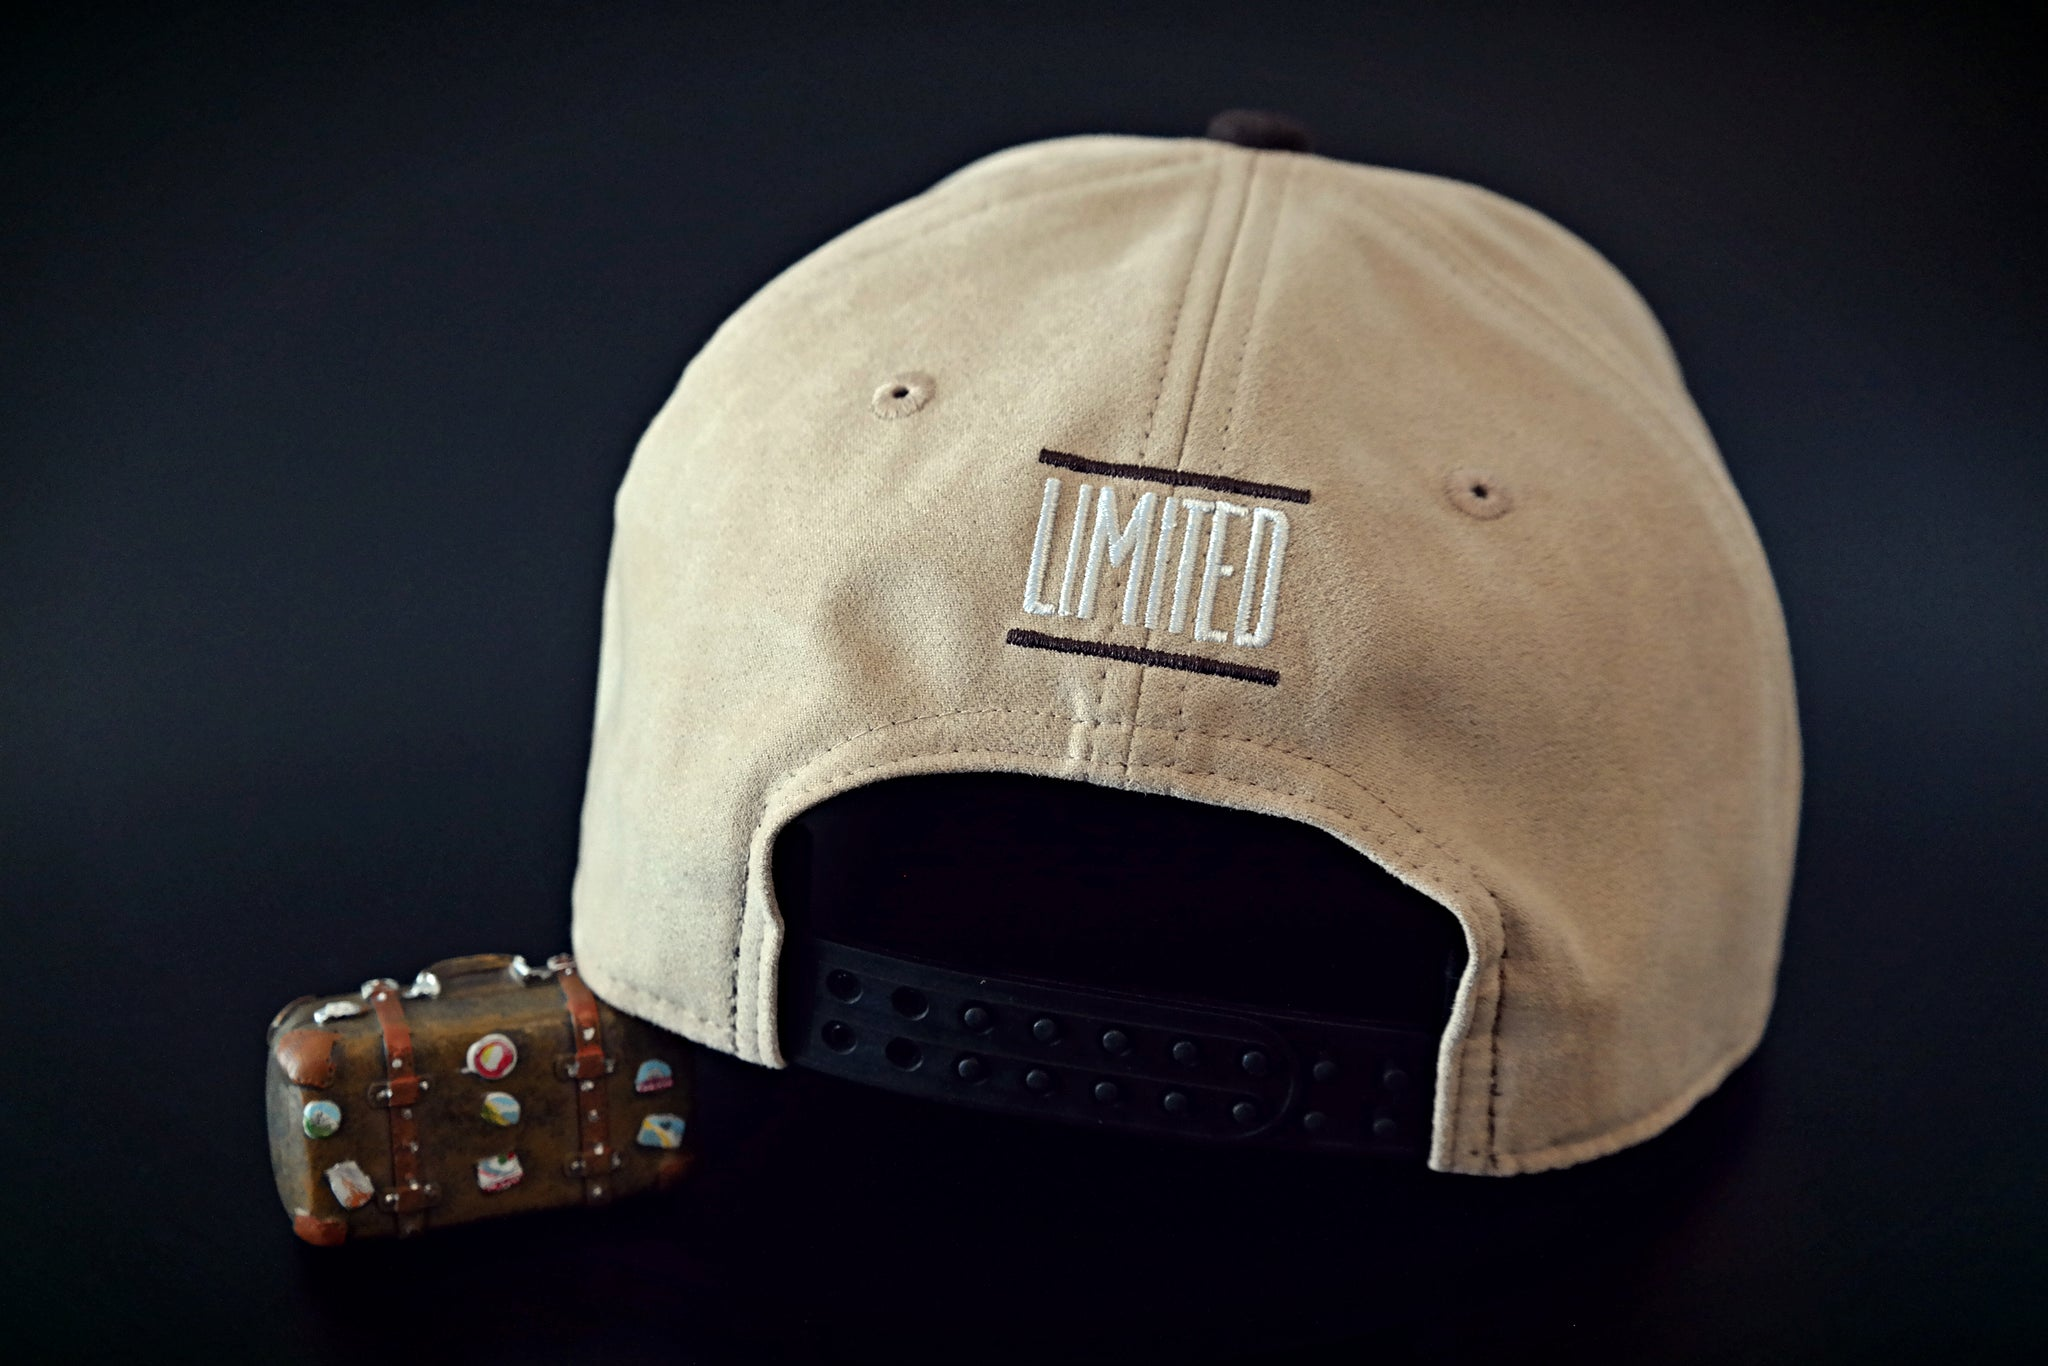 Limited_Limitierte_Snapback_Cap_Travel_04